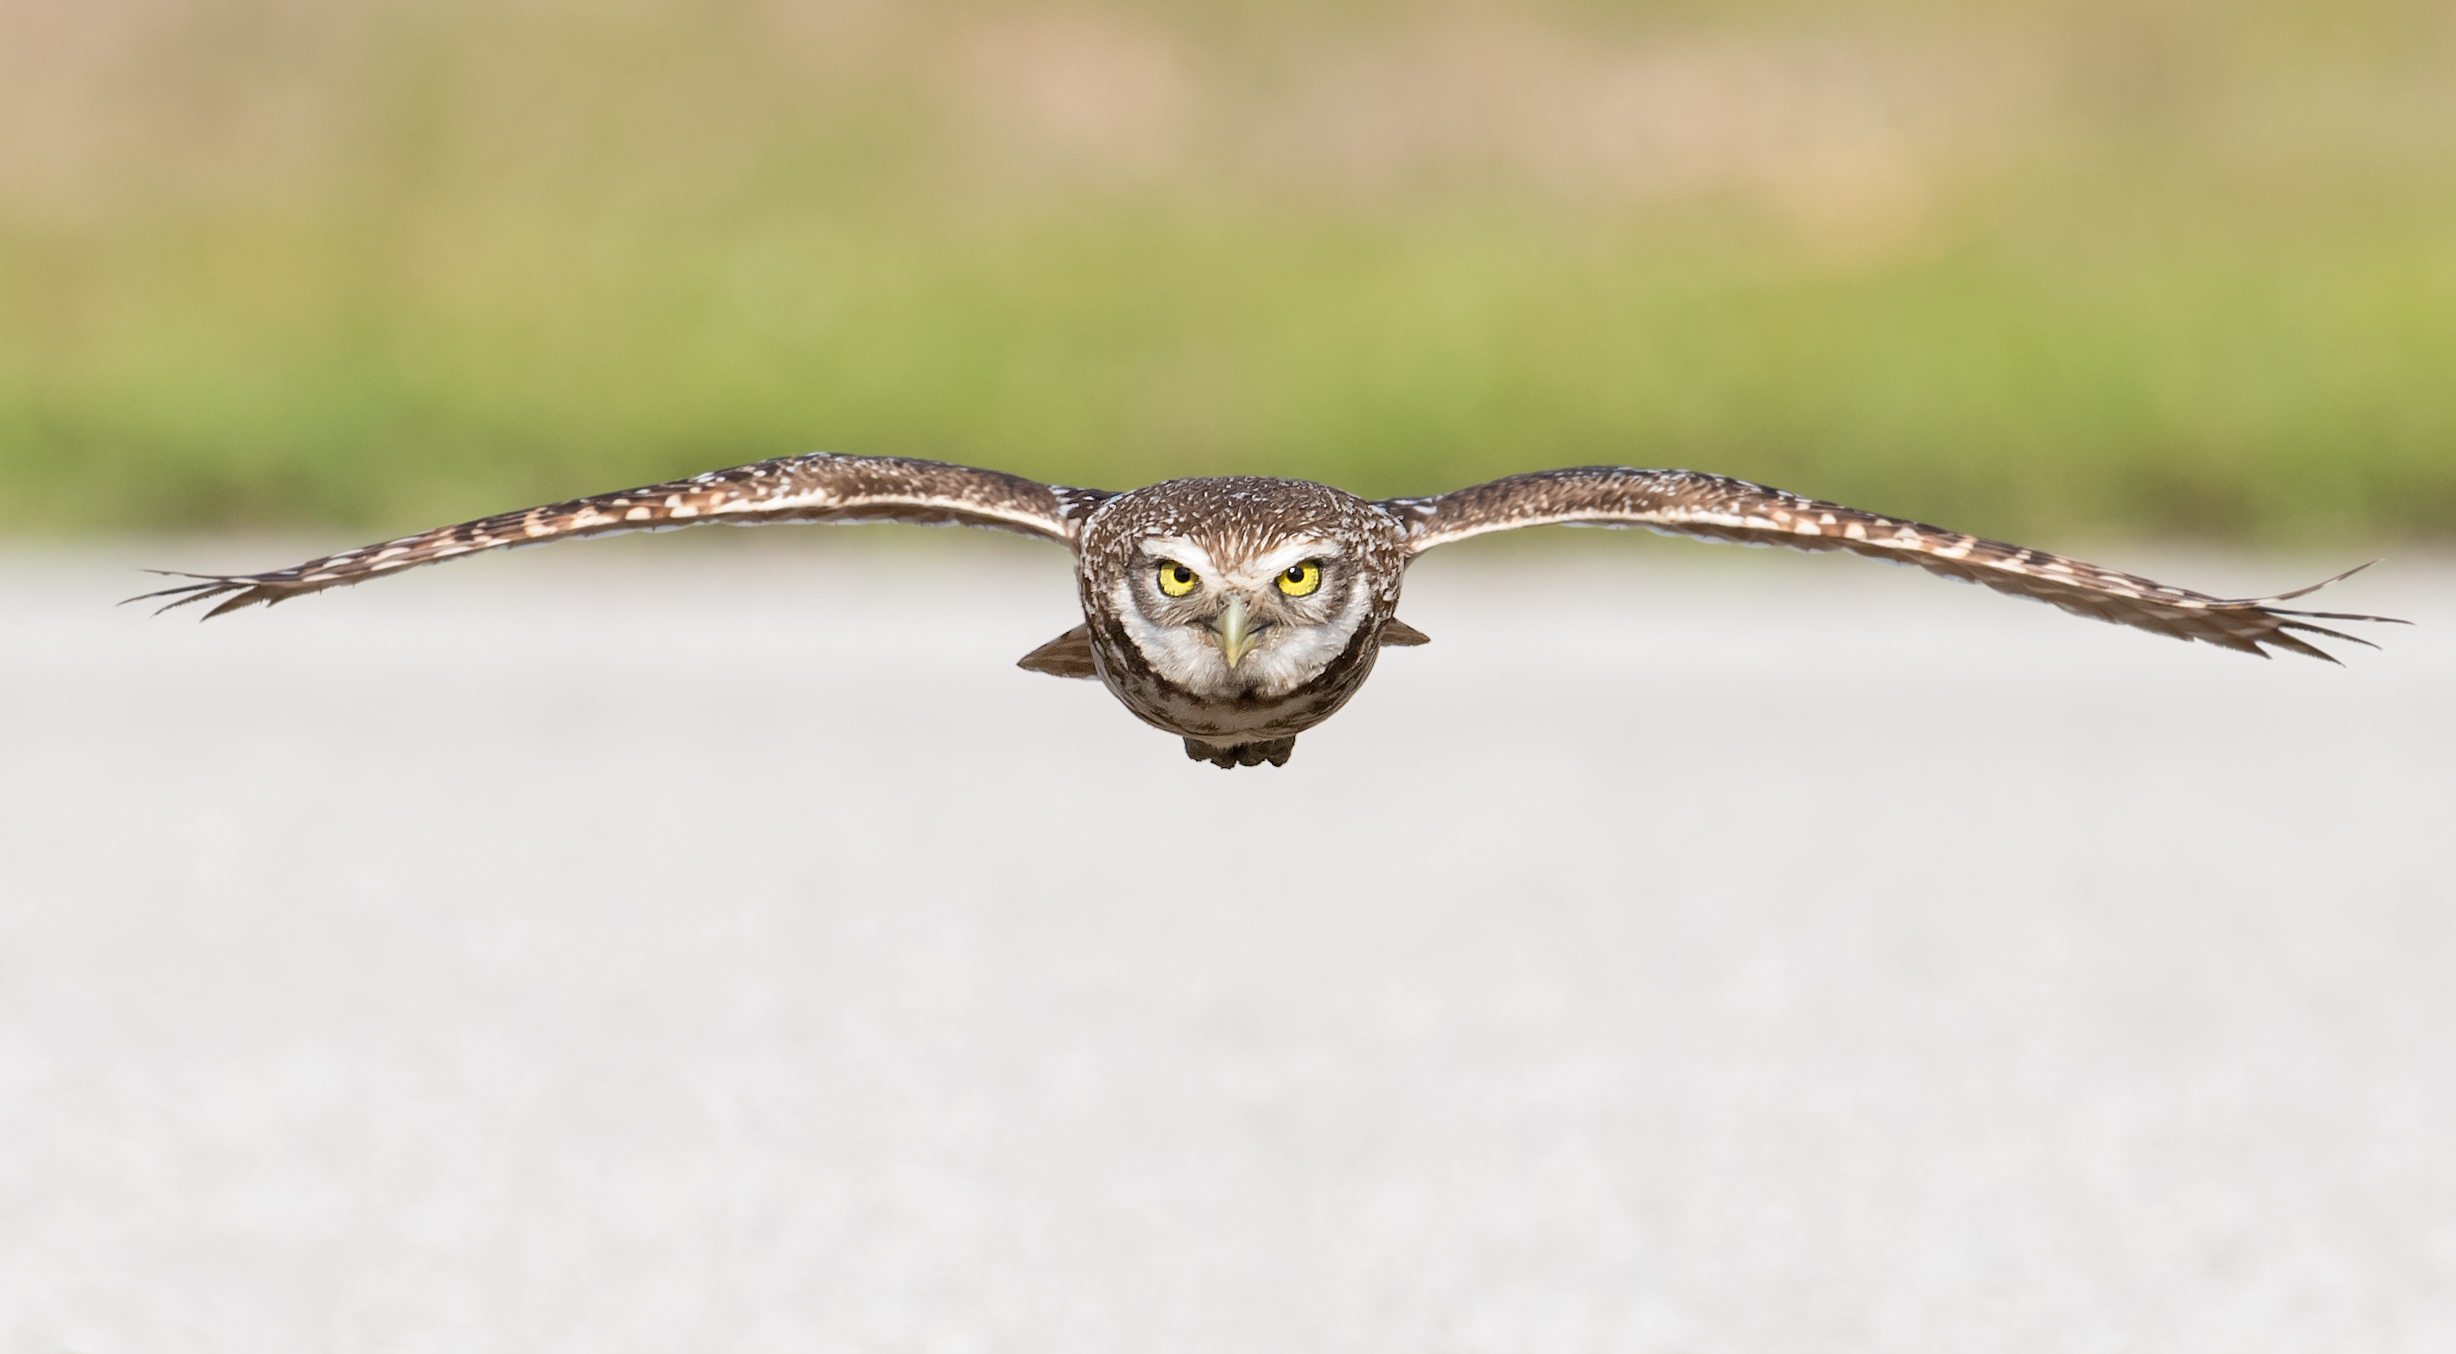 Burrowing Owl - This image is of a burrowing owl in Cape Coral, FL. While this image may not be the most impressive photo to some, it is actually one of the more difficult that I have taken. Burrowing owls are very small and very fast, coupled with one flying directly at me made it very difficult for the camera to track and keep it in focus. After fighting with this for a while I tried a new approach. Instead of trying to track the owl flying through its entire path, I picked a small area where I wanted the owl to be and focused on that. Once the owl approached that area, I then engaged the autofocus on the camera using 9 autofocus points and was able to nail this shot finally! Camera settings: Nikon D5 & 600mm f4 VR lens: Manual Mode:1/3200, f8, ISO 1000.